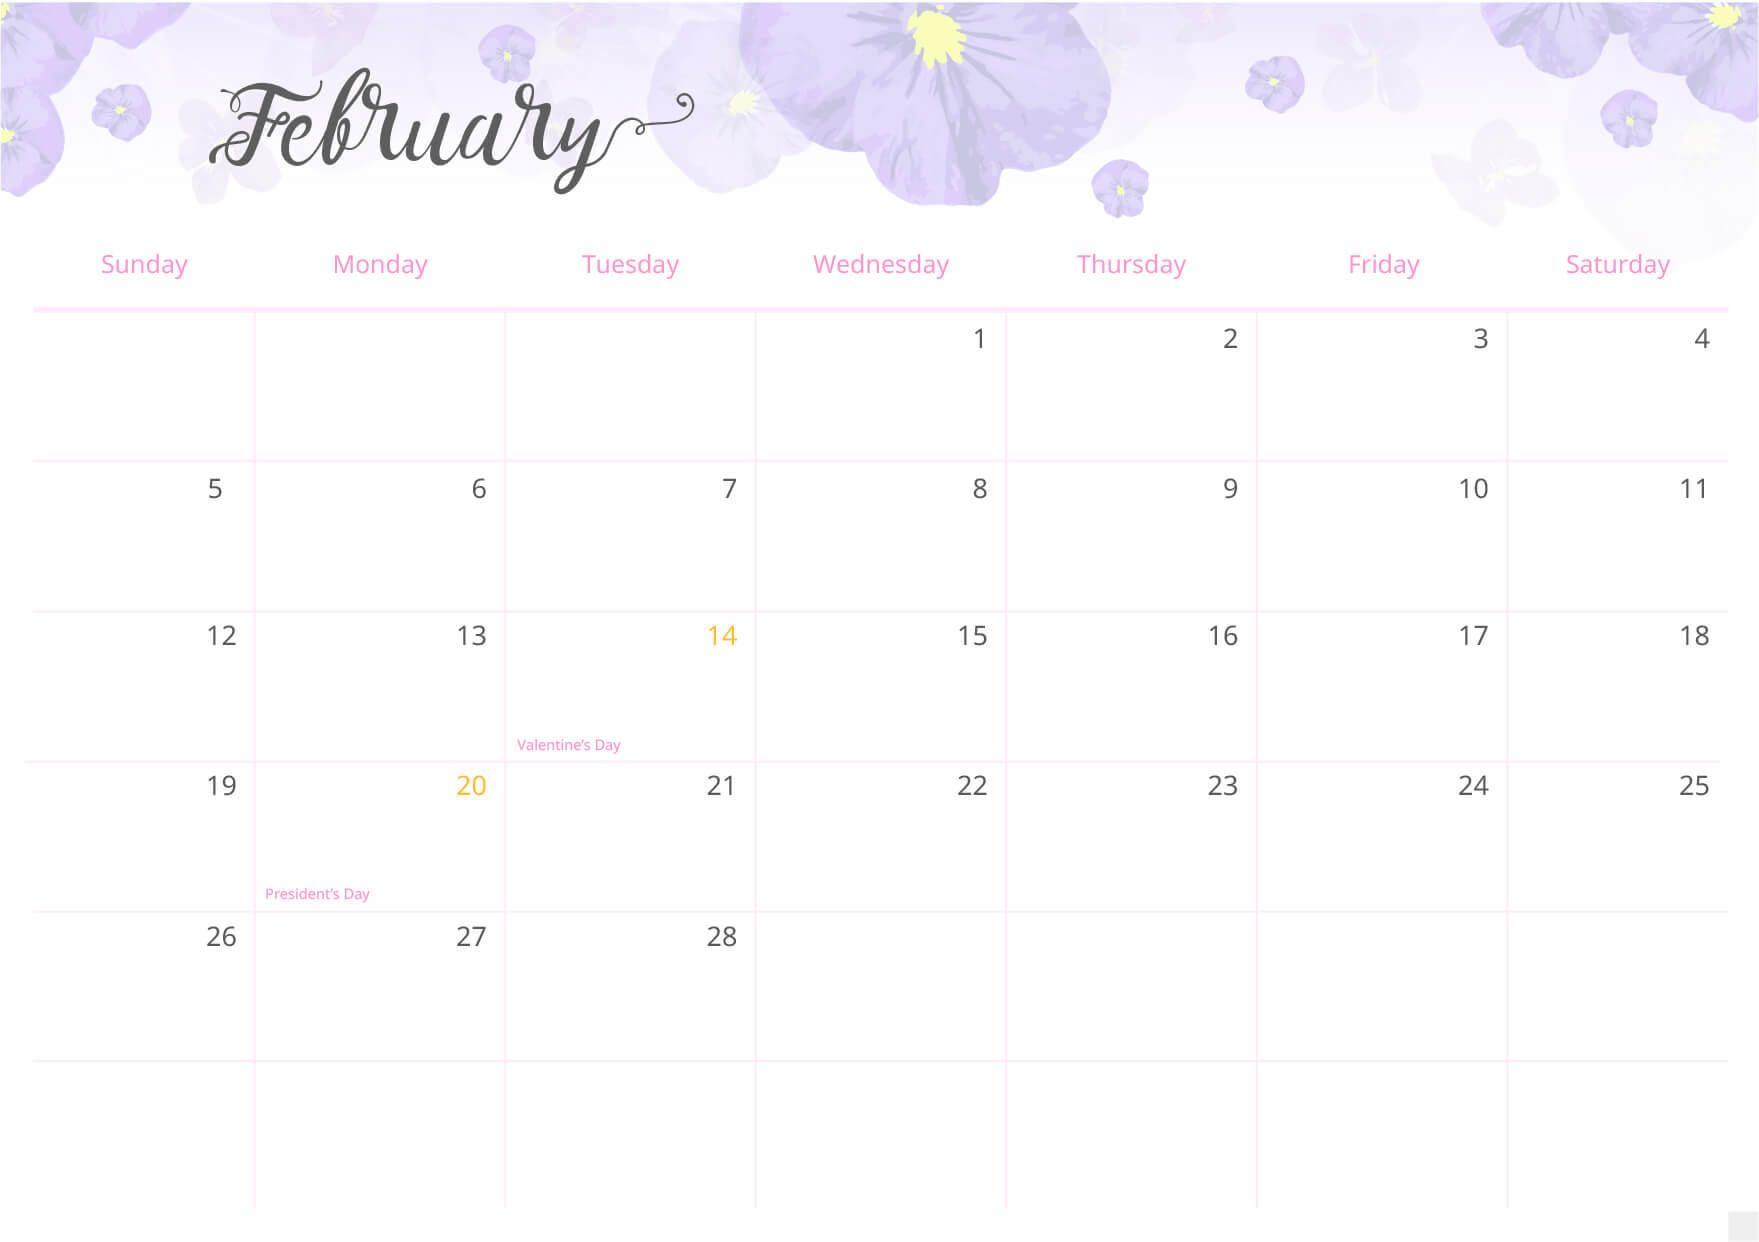 Use the calendar to mark upcoming events, meetings and appointmens.